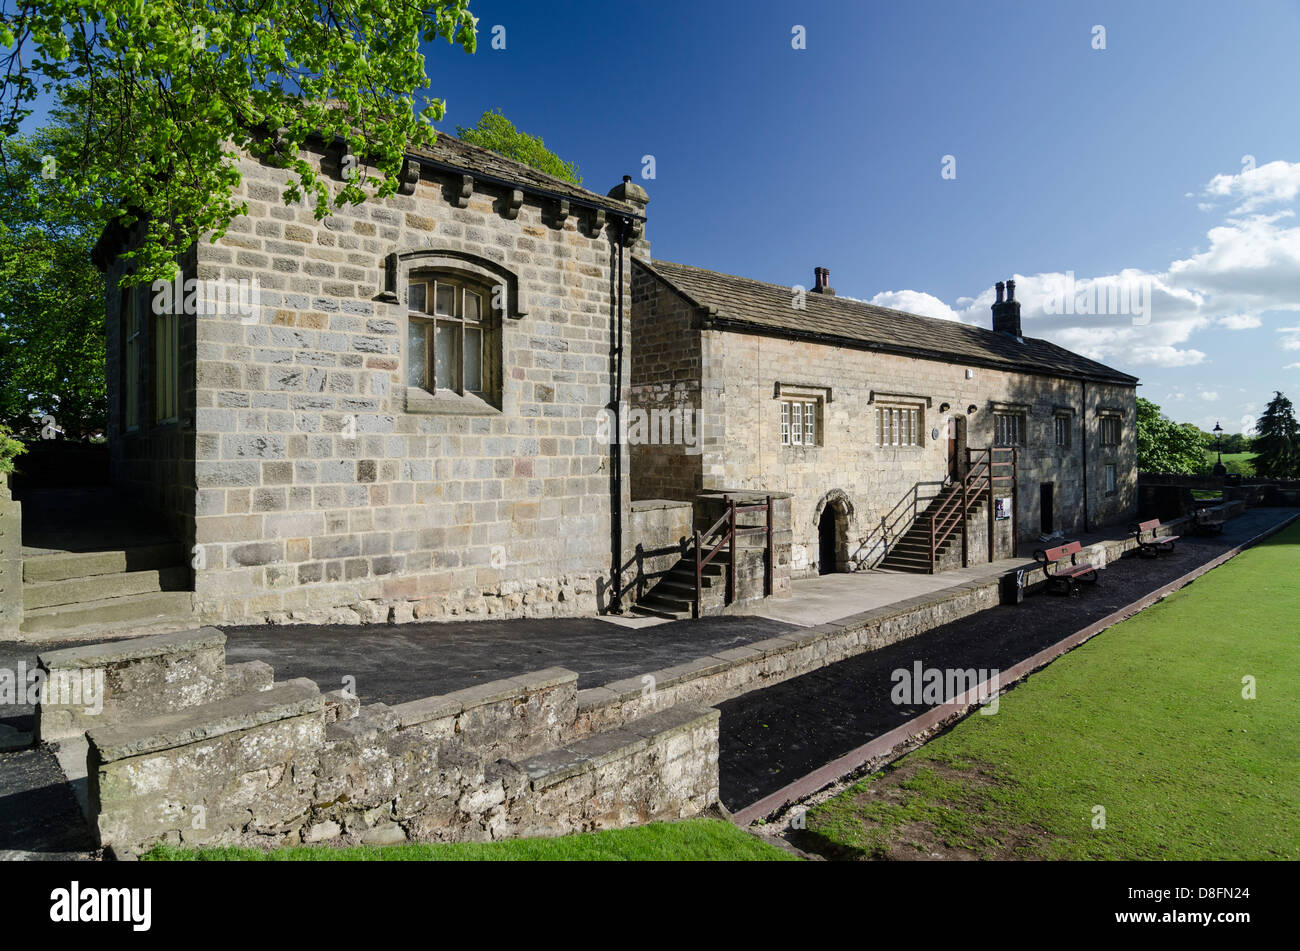 Courthouse Museum Knaresborough North Yorkshire UK - Stock Image